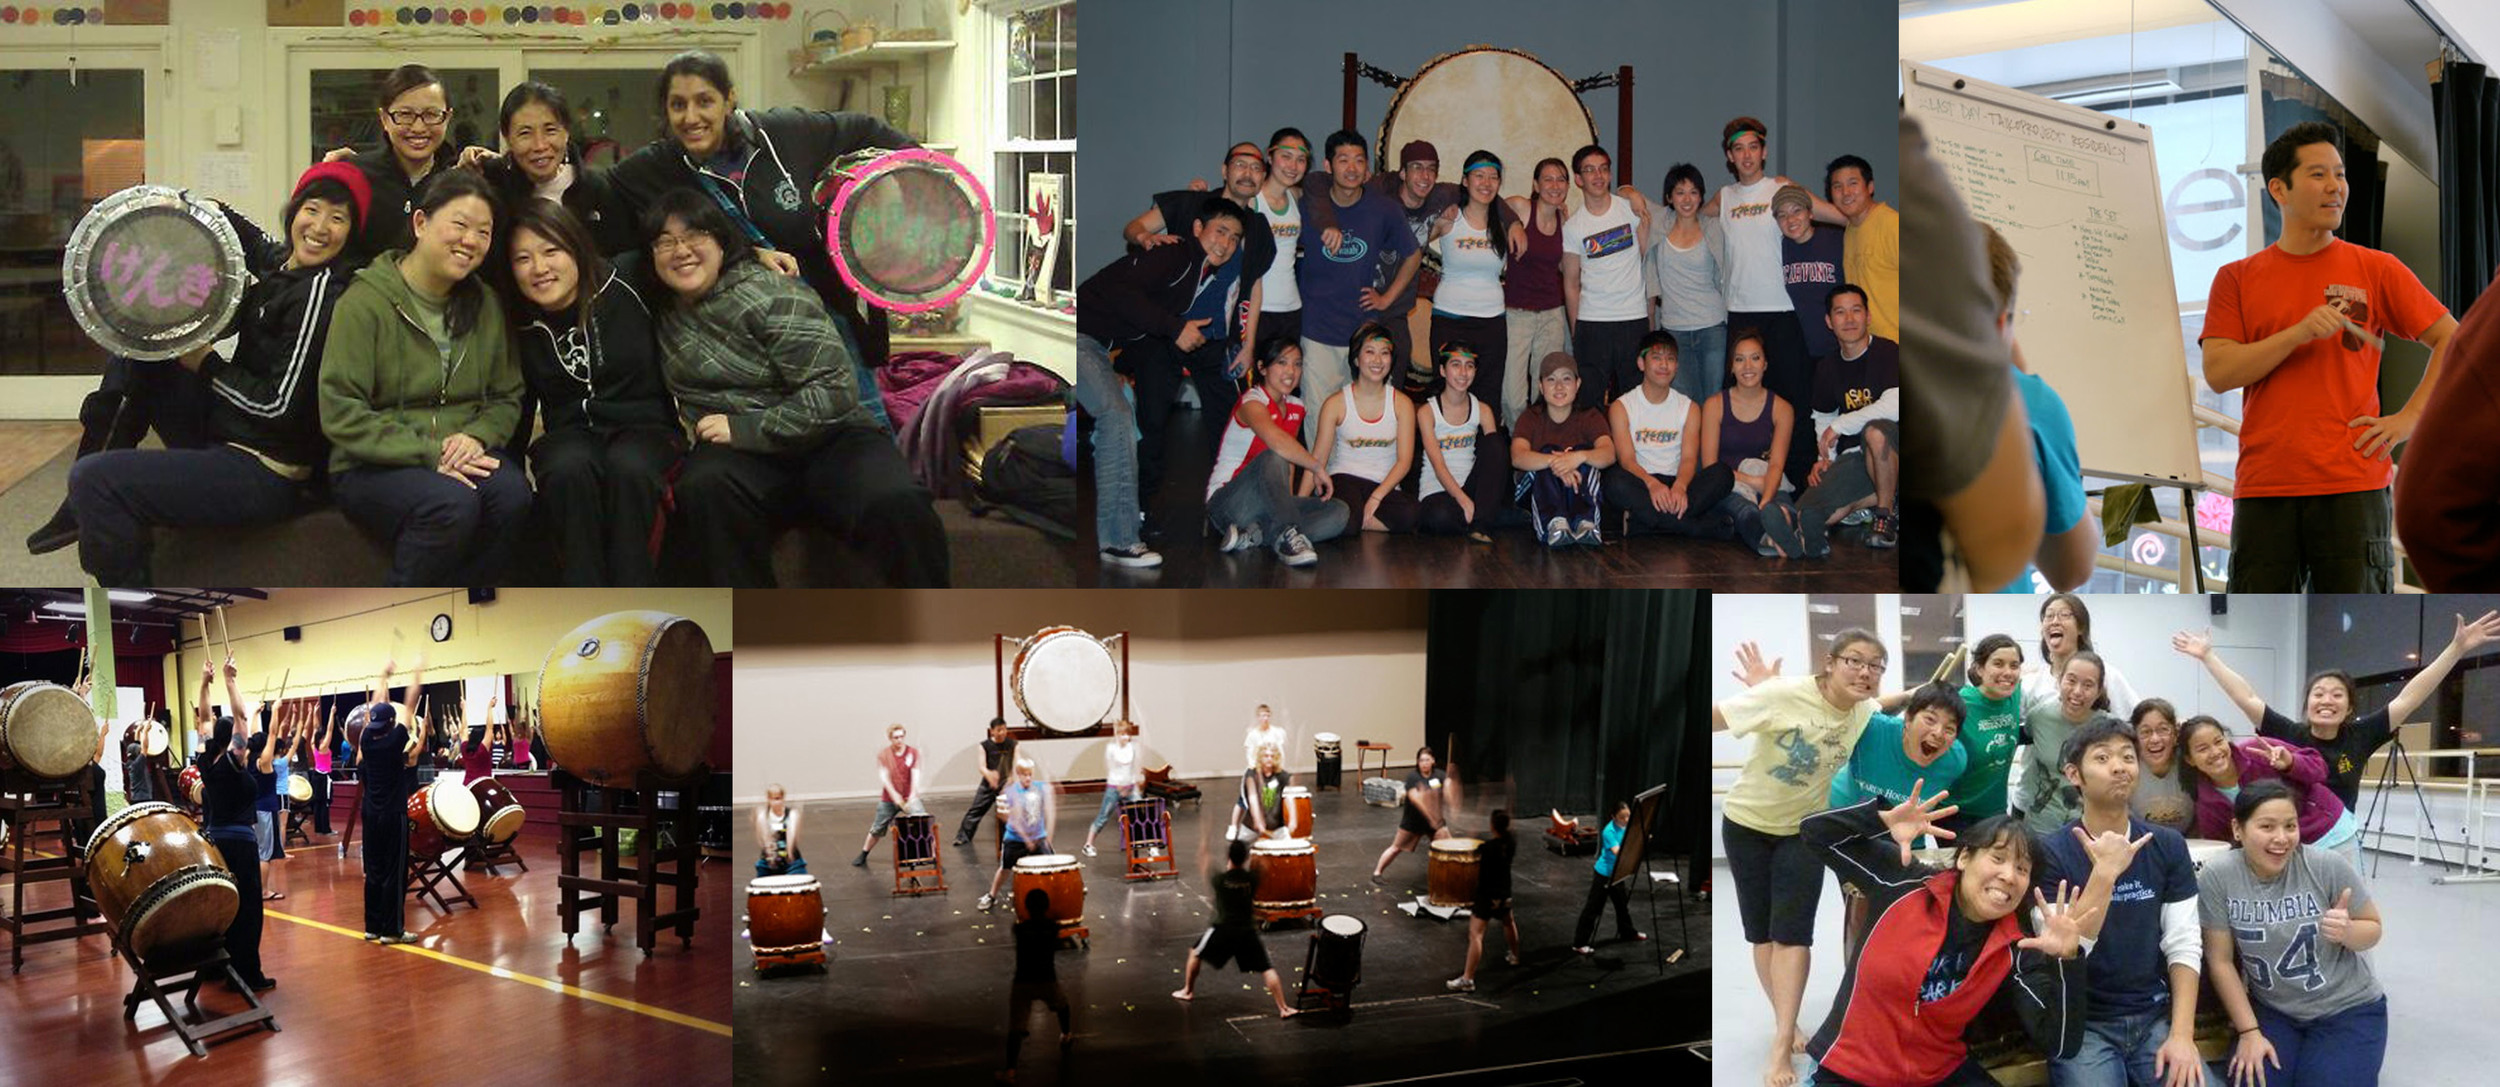 Group workshops with the Genki Spark (Boston, MA), Chibi Taiko (Vancouver, CA), Naruwan & SDT (San Diego, CA), and high school students (Cleveland, OH)